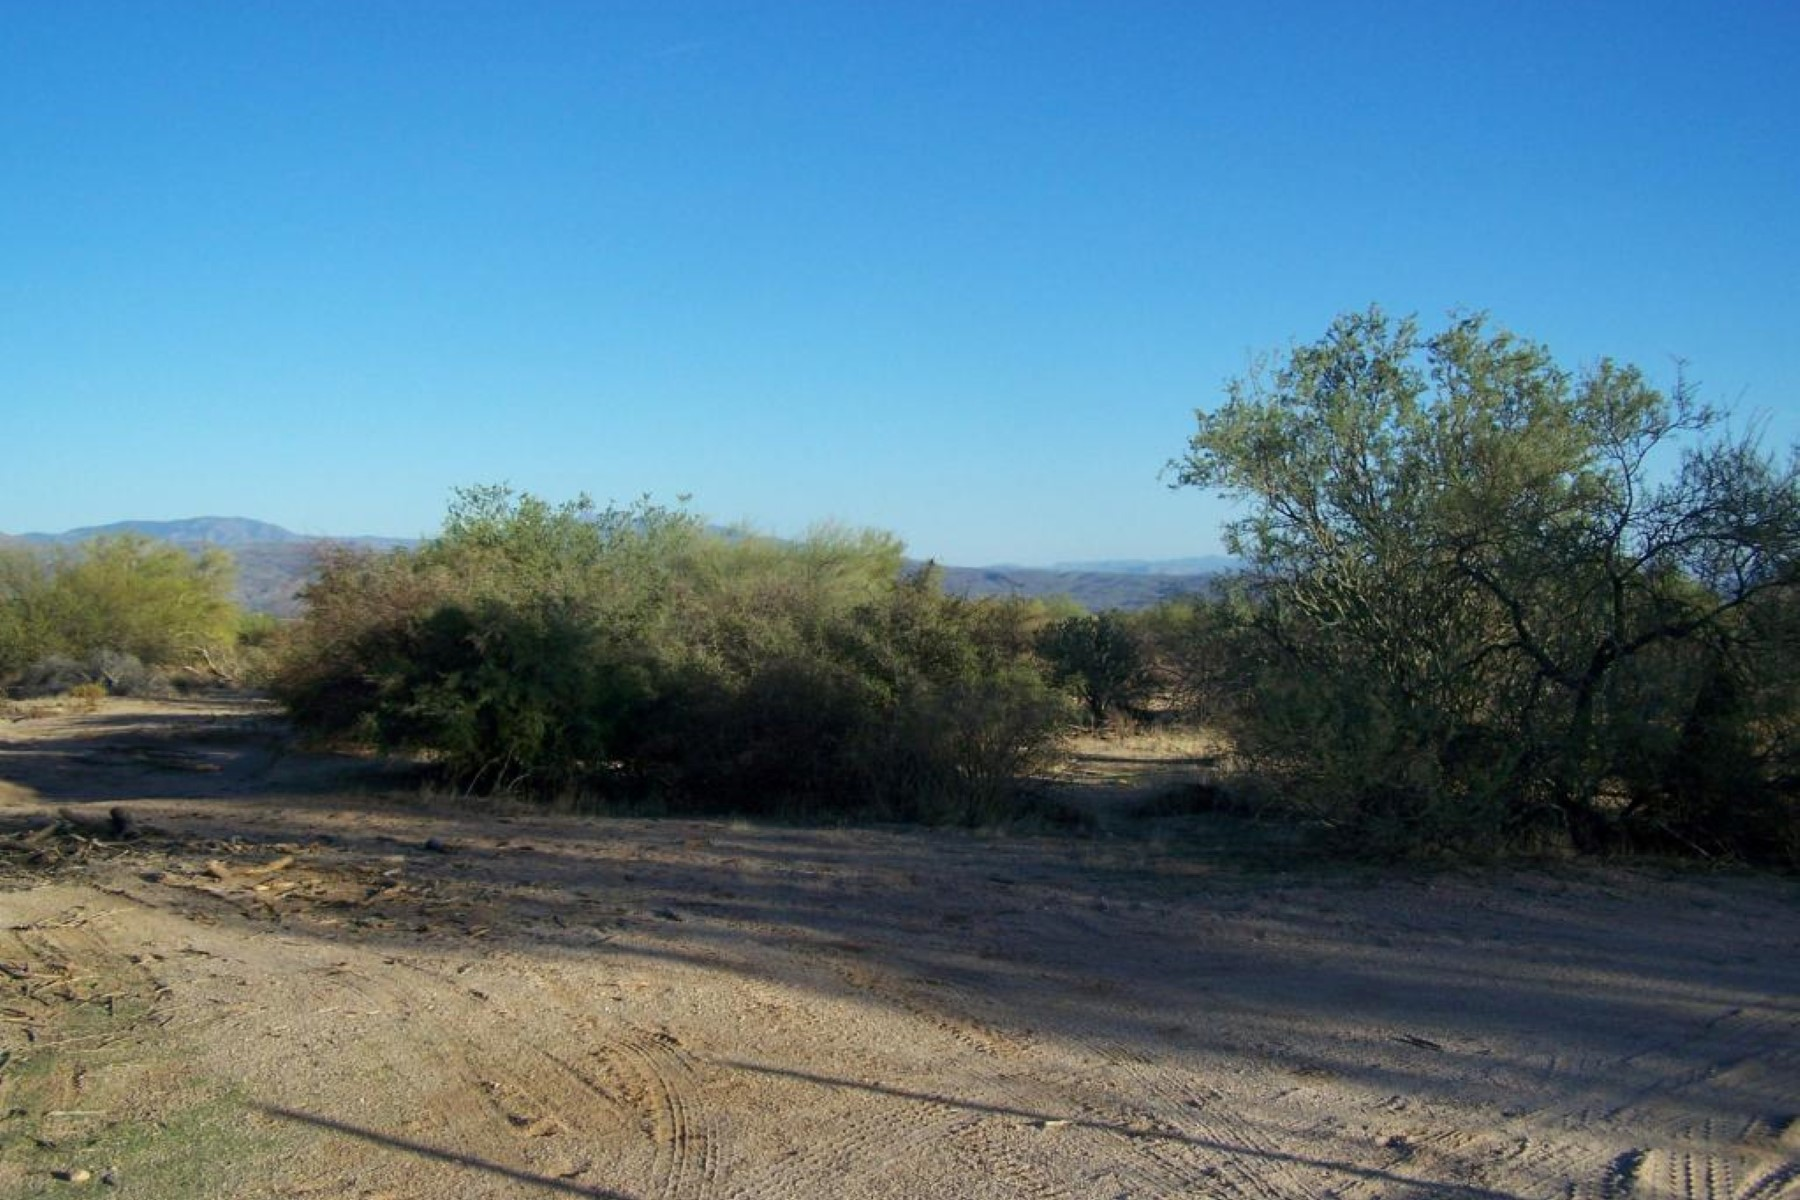 Terreno para Venda às Horse lovers paradise surrounded by the Sonoran desert 30729 N 162nd Pl Scottsdale, Arizona, 85262 Estados Unidos